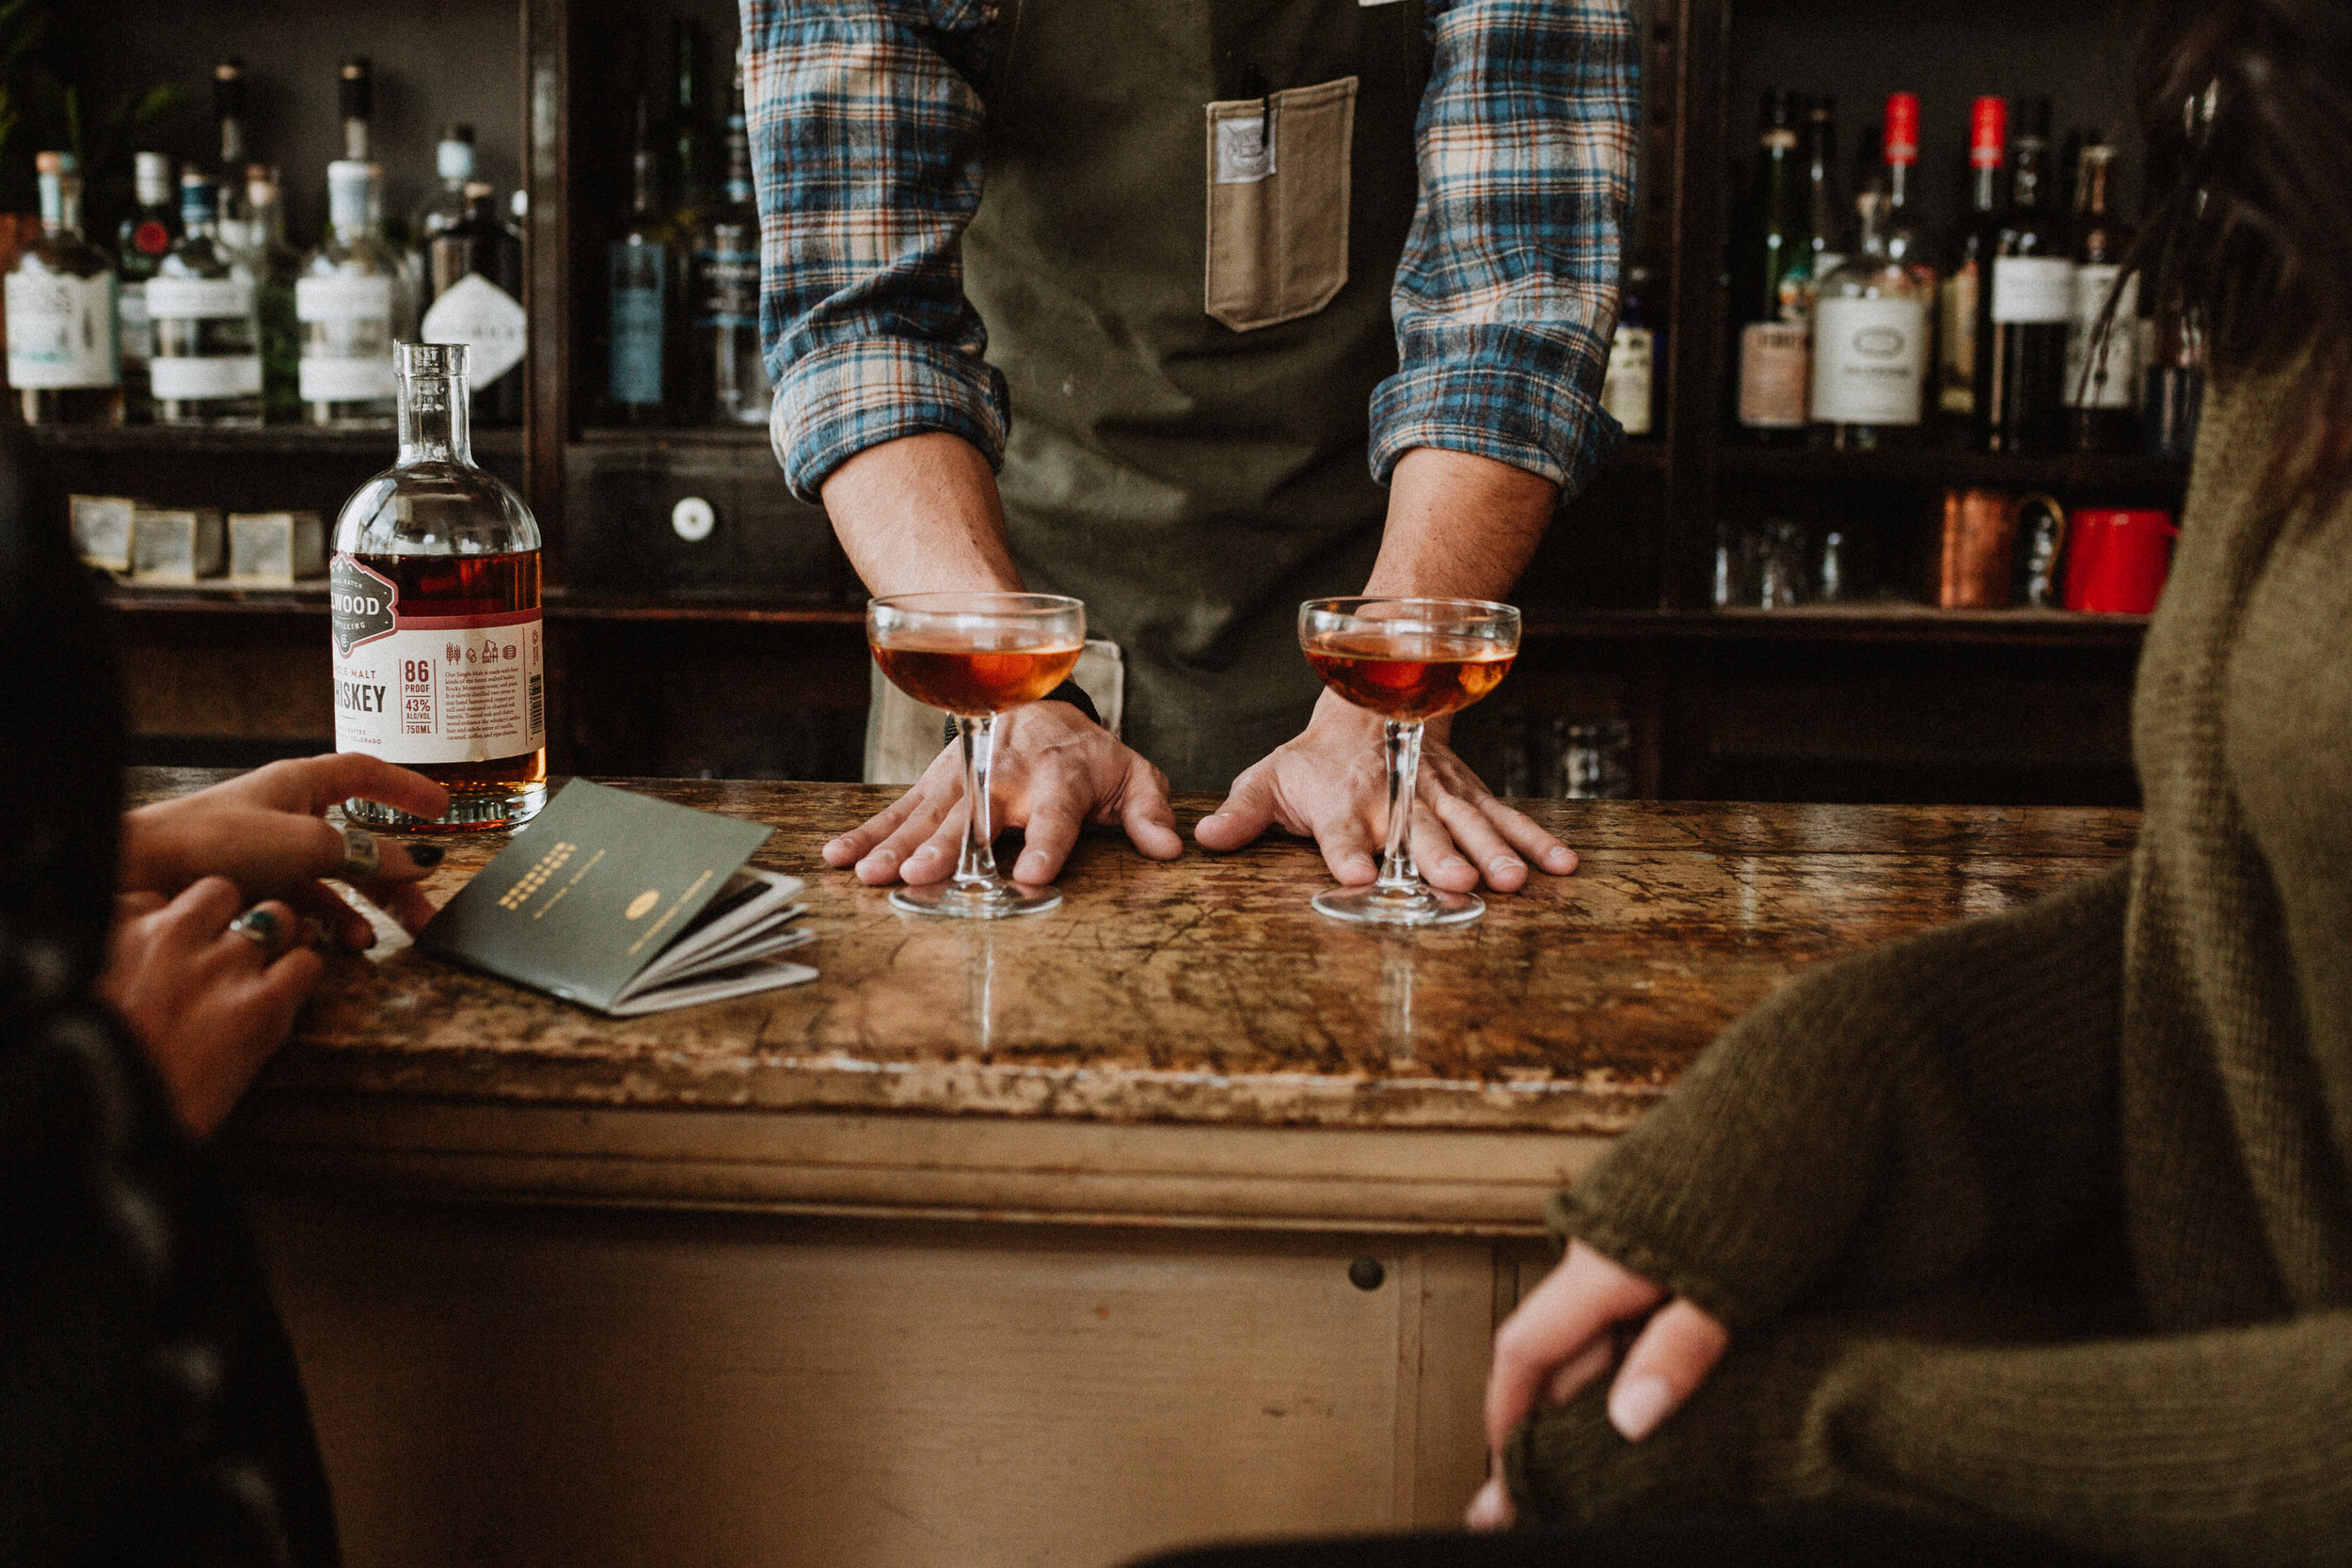 venue introductions - Our city managers are experts in their local hoods, and build strong relationships with each venue. Allow us to introduce your brand to each bar manager, showcasing why they need to know about you!